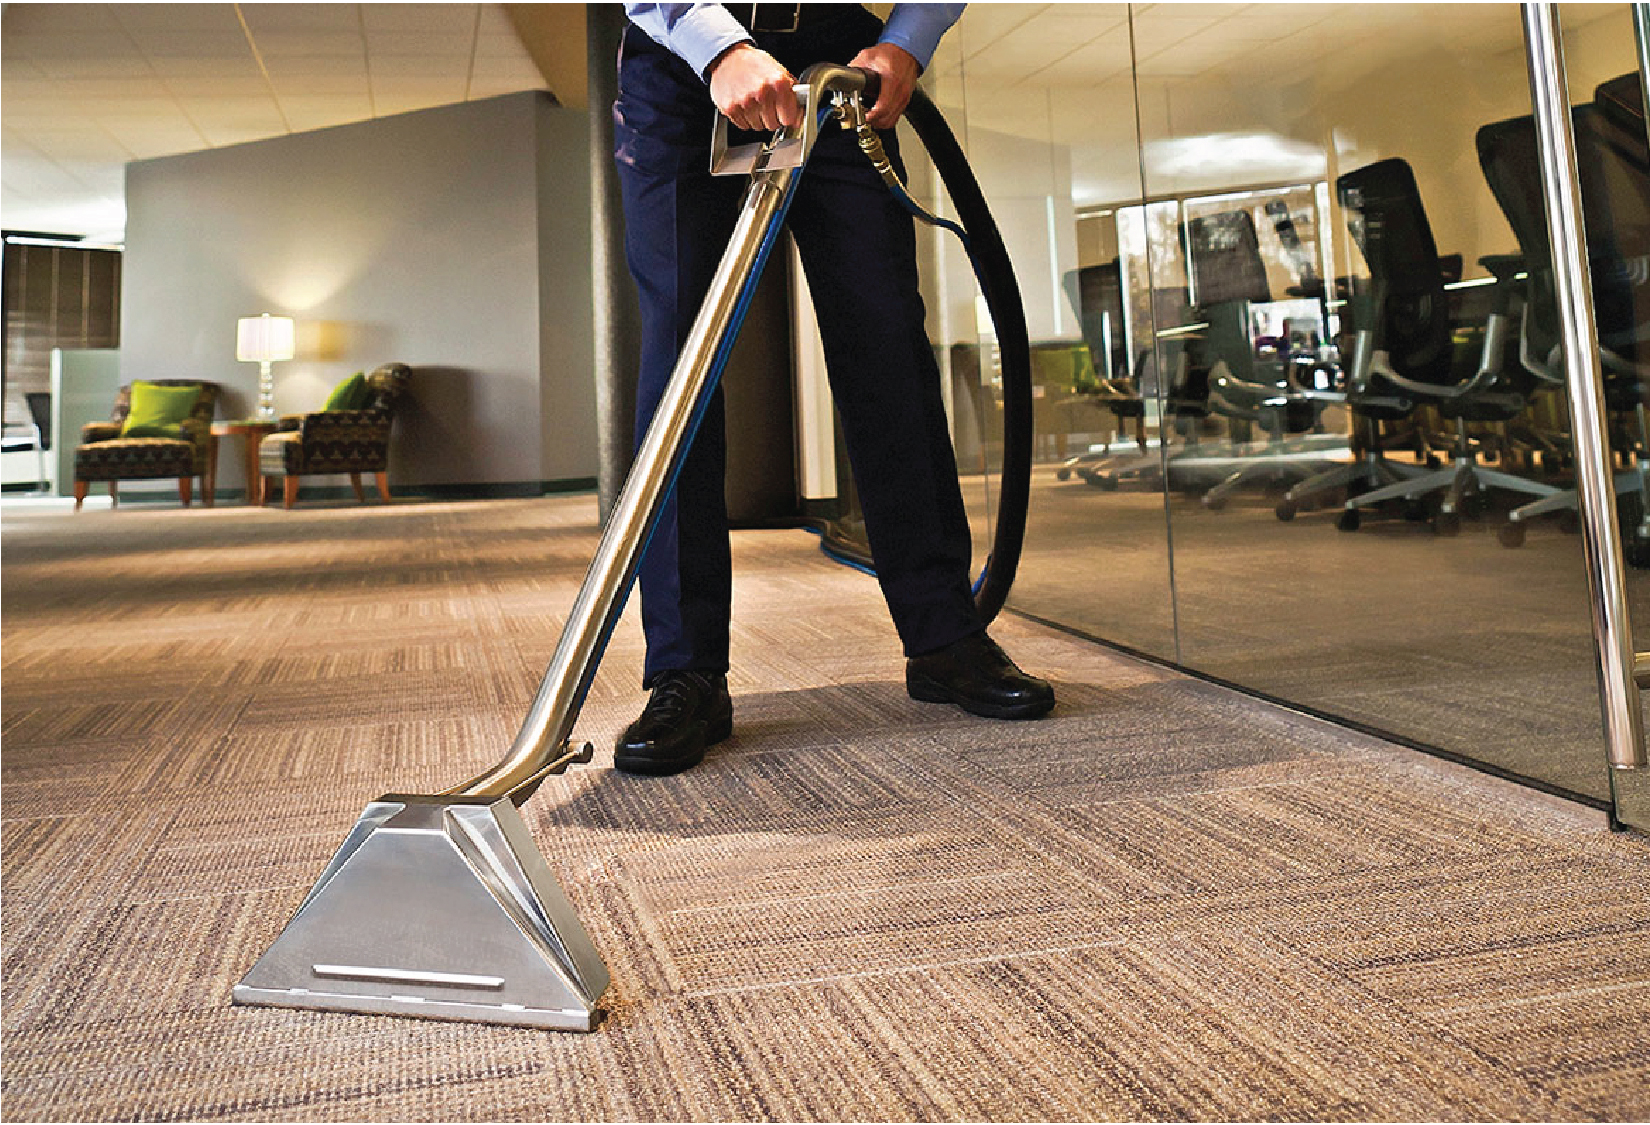 Carpet Cleaning - Bison Janitorial has a team of fully trained carpet cleaning technicians that utilize several methods of professional carpet cleaning. Bison's carpet cleaning methods include: hot water extraction, bonnet cleaning, encapsulation and shampooing with a rotary carpet cleaning machine.Bison uses effective green cleaning products for a carpet cleaning in all situations.